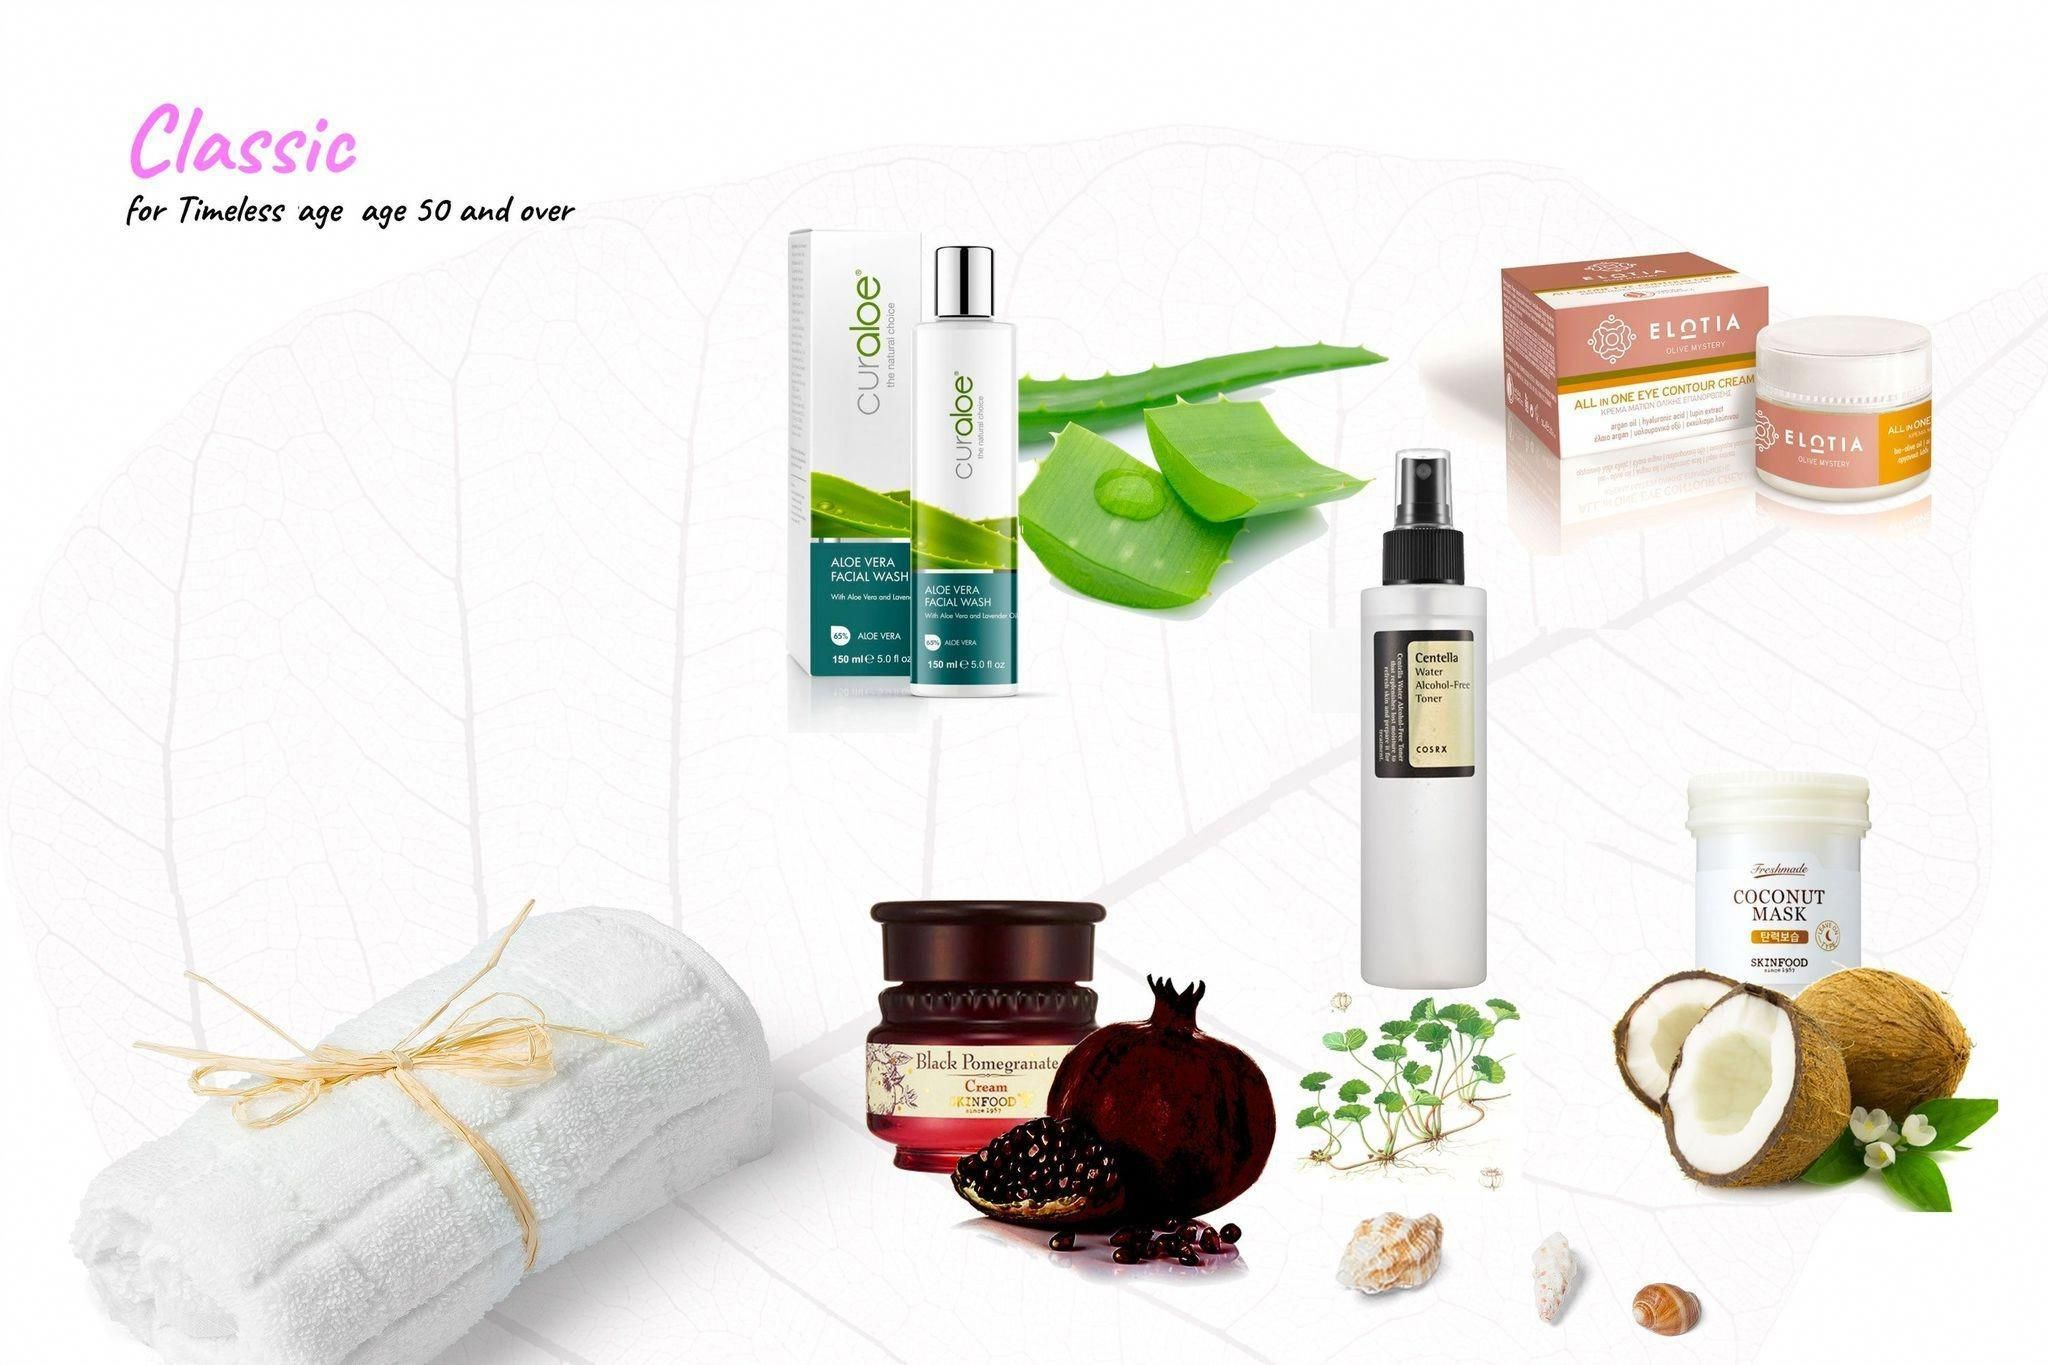 Best Skin Care Regimen For Aging Skin Best Serum For 30s Skin Skin Routine For 30 Year Old 20181127 With Images Anti Aging Skin Products Natural Skin Care Remedies